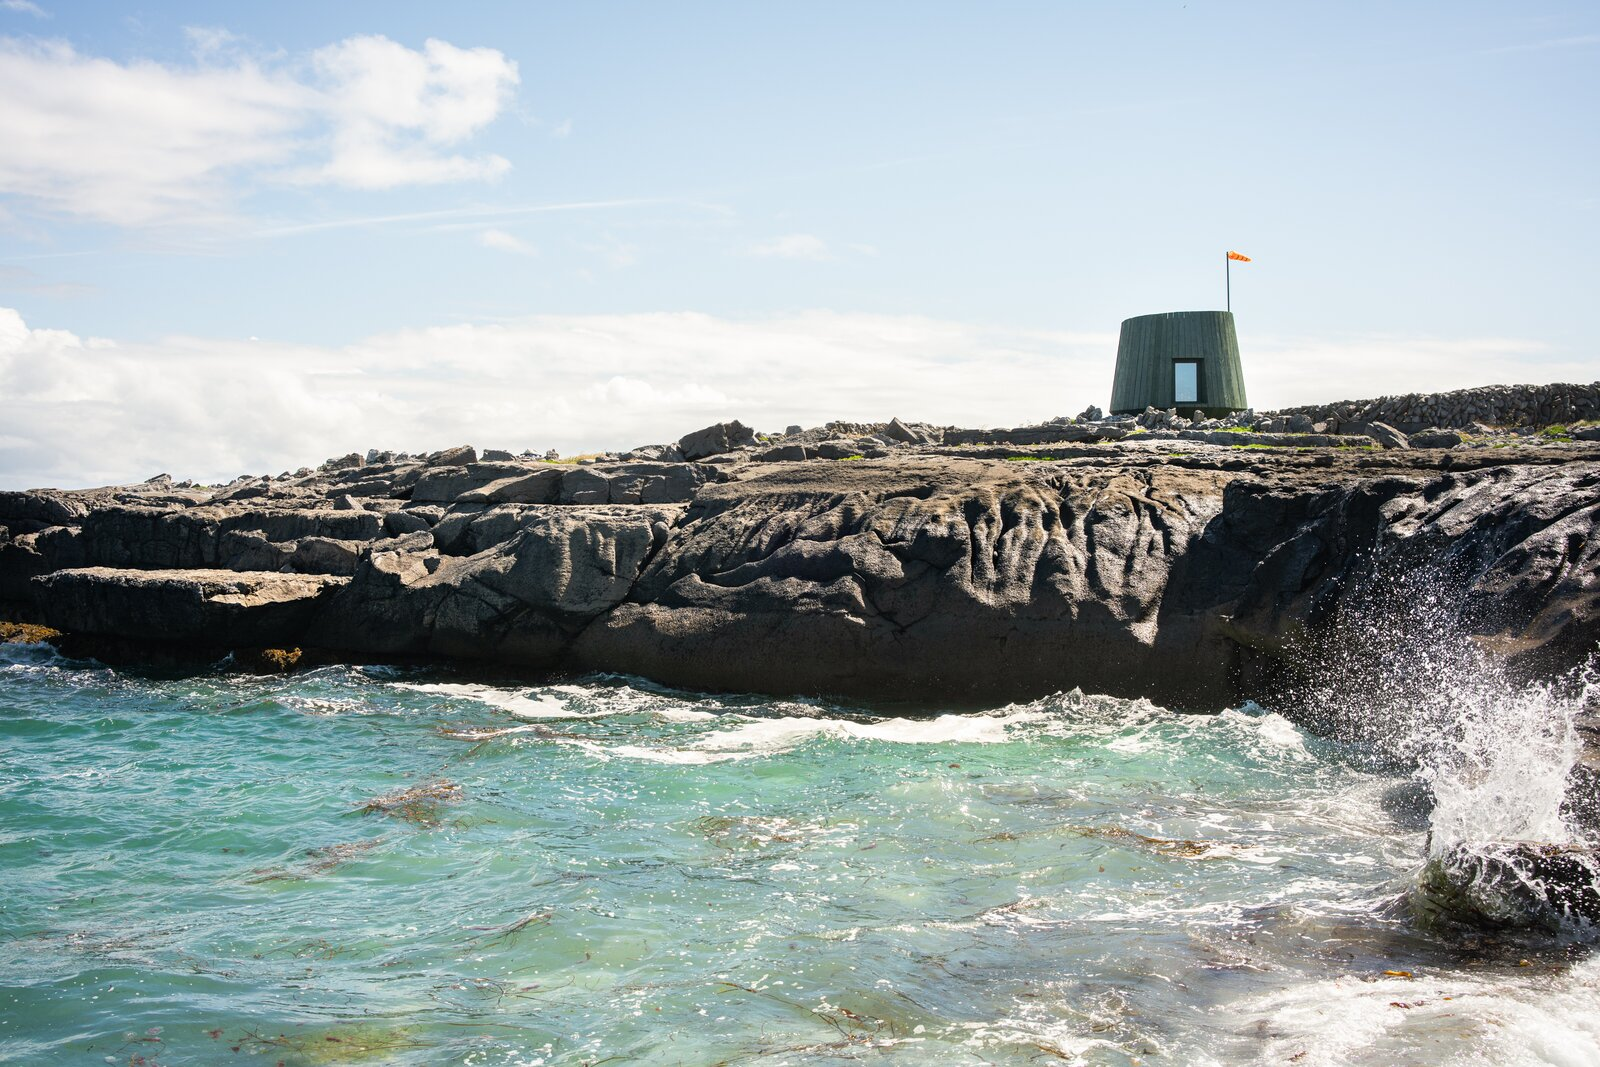 Photo 1 of 12 in An Off-Grid Artist's Retreat Pops Up on an Island Near Ireland